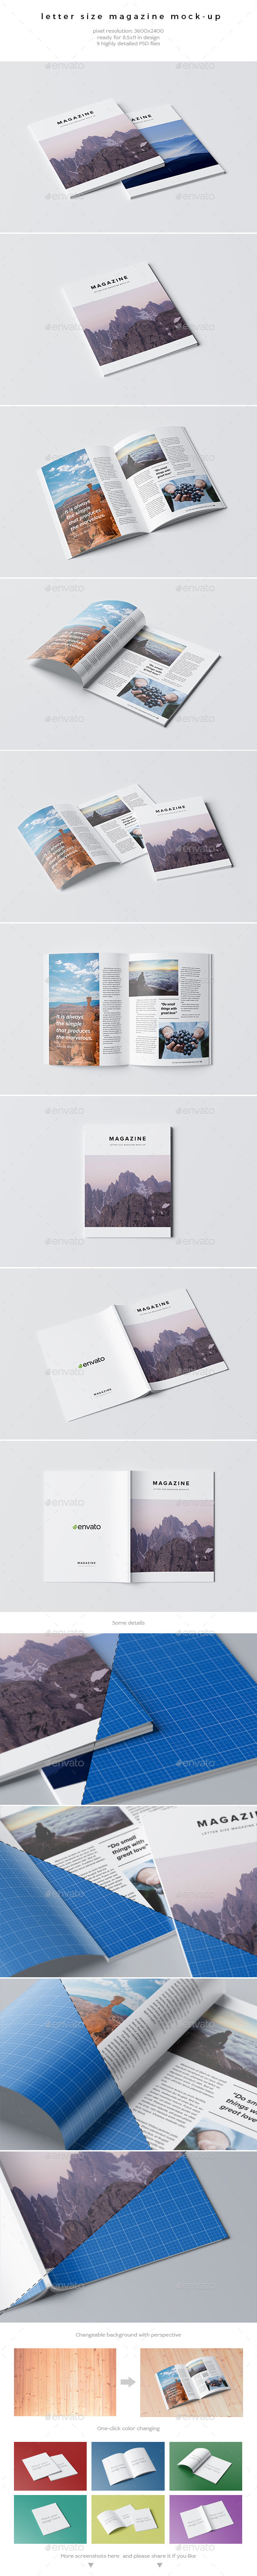 Letter Size Magazine Mock-Up